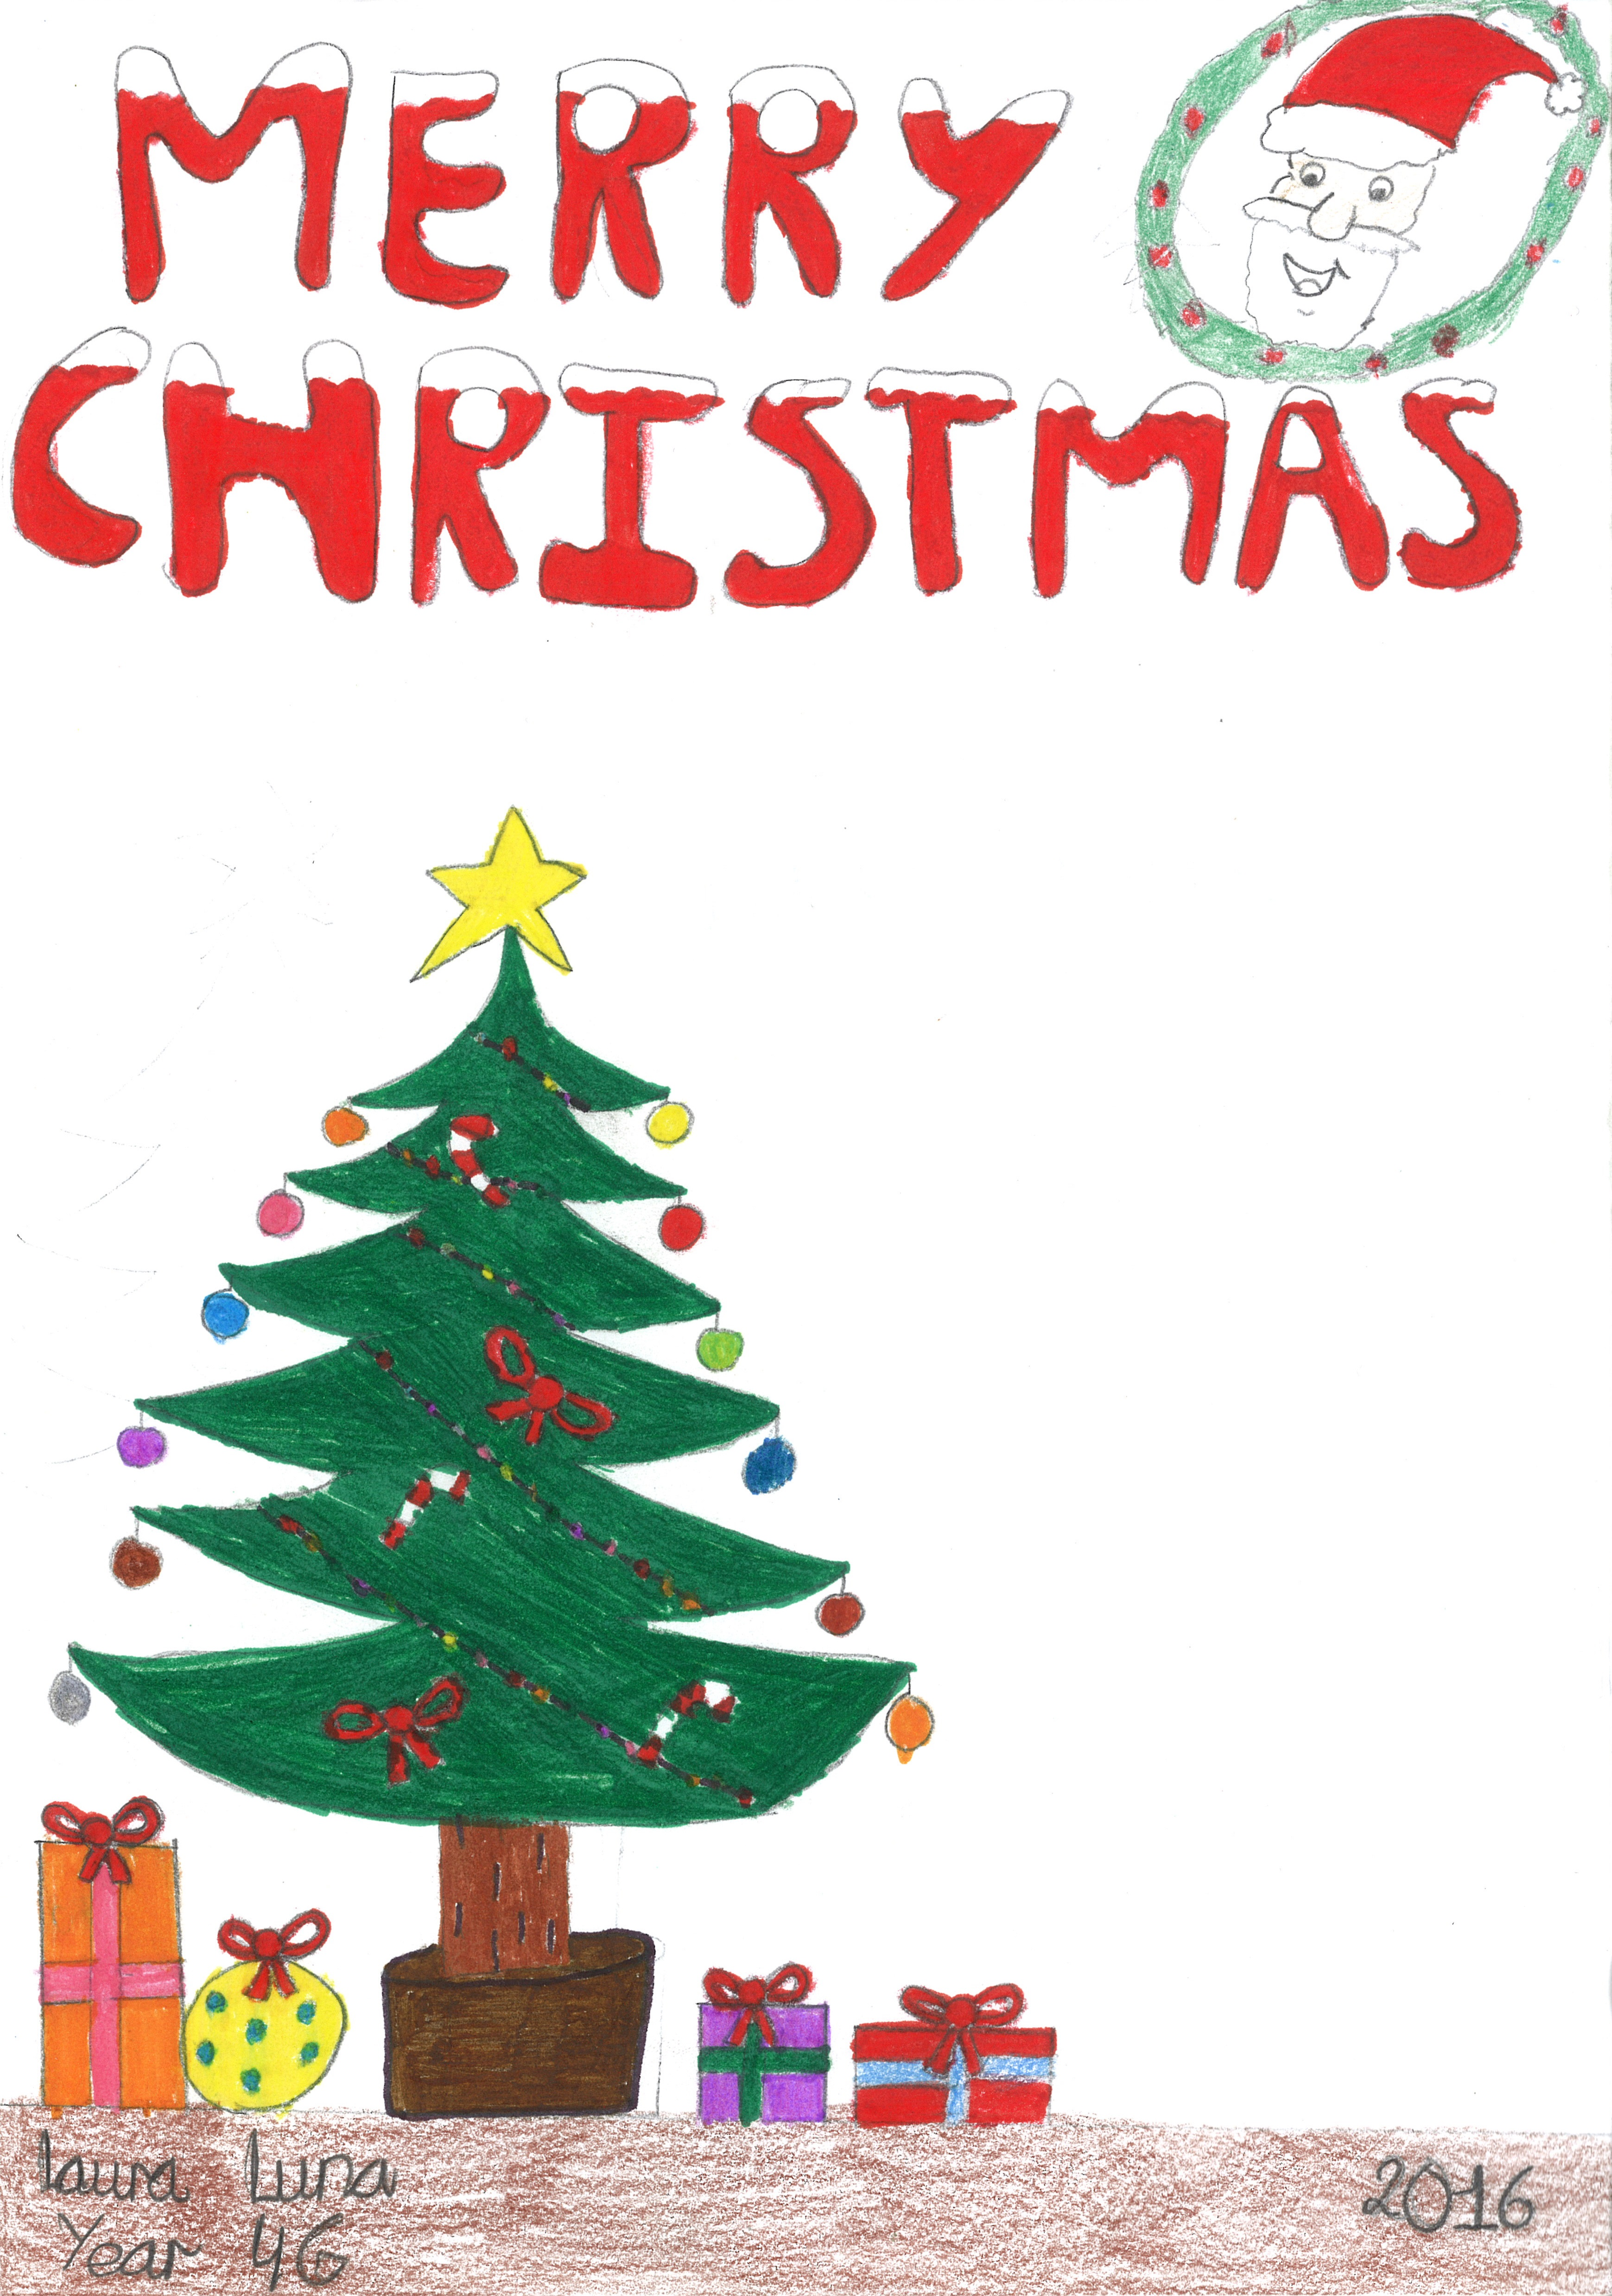 Christmas Concert / Fayre Programme 2016 - The British College